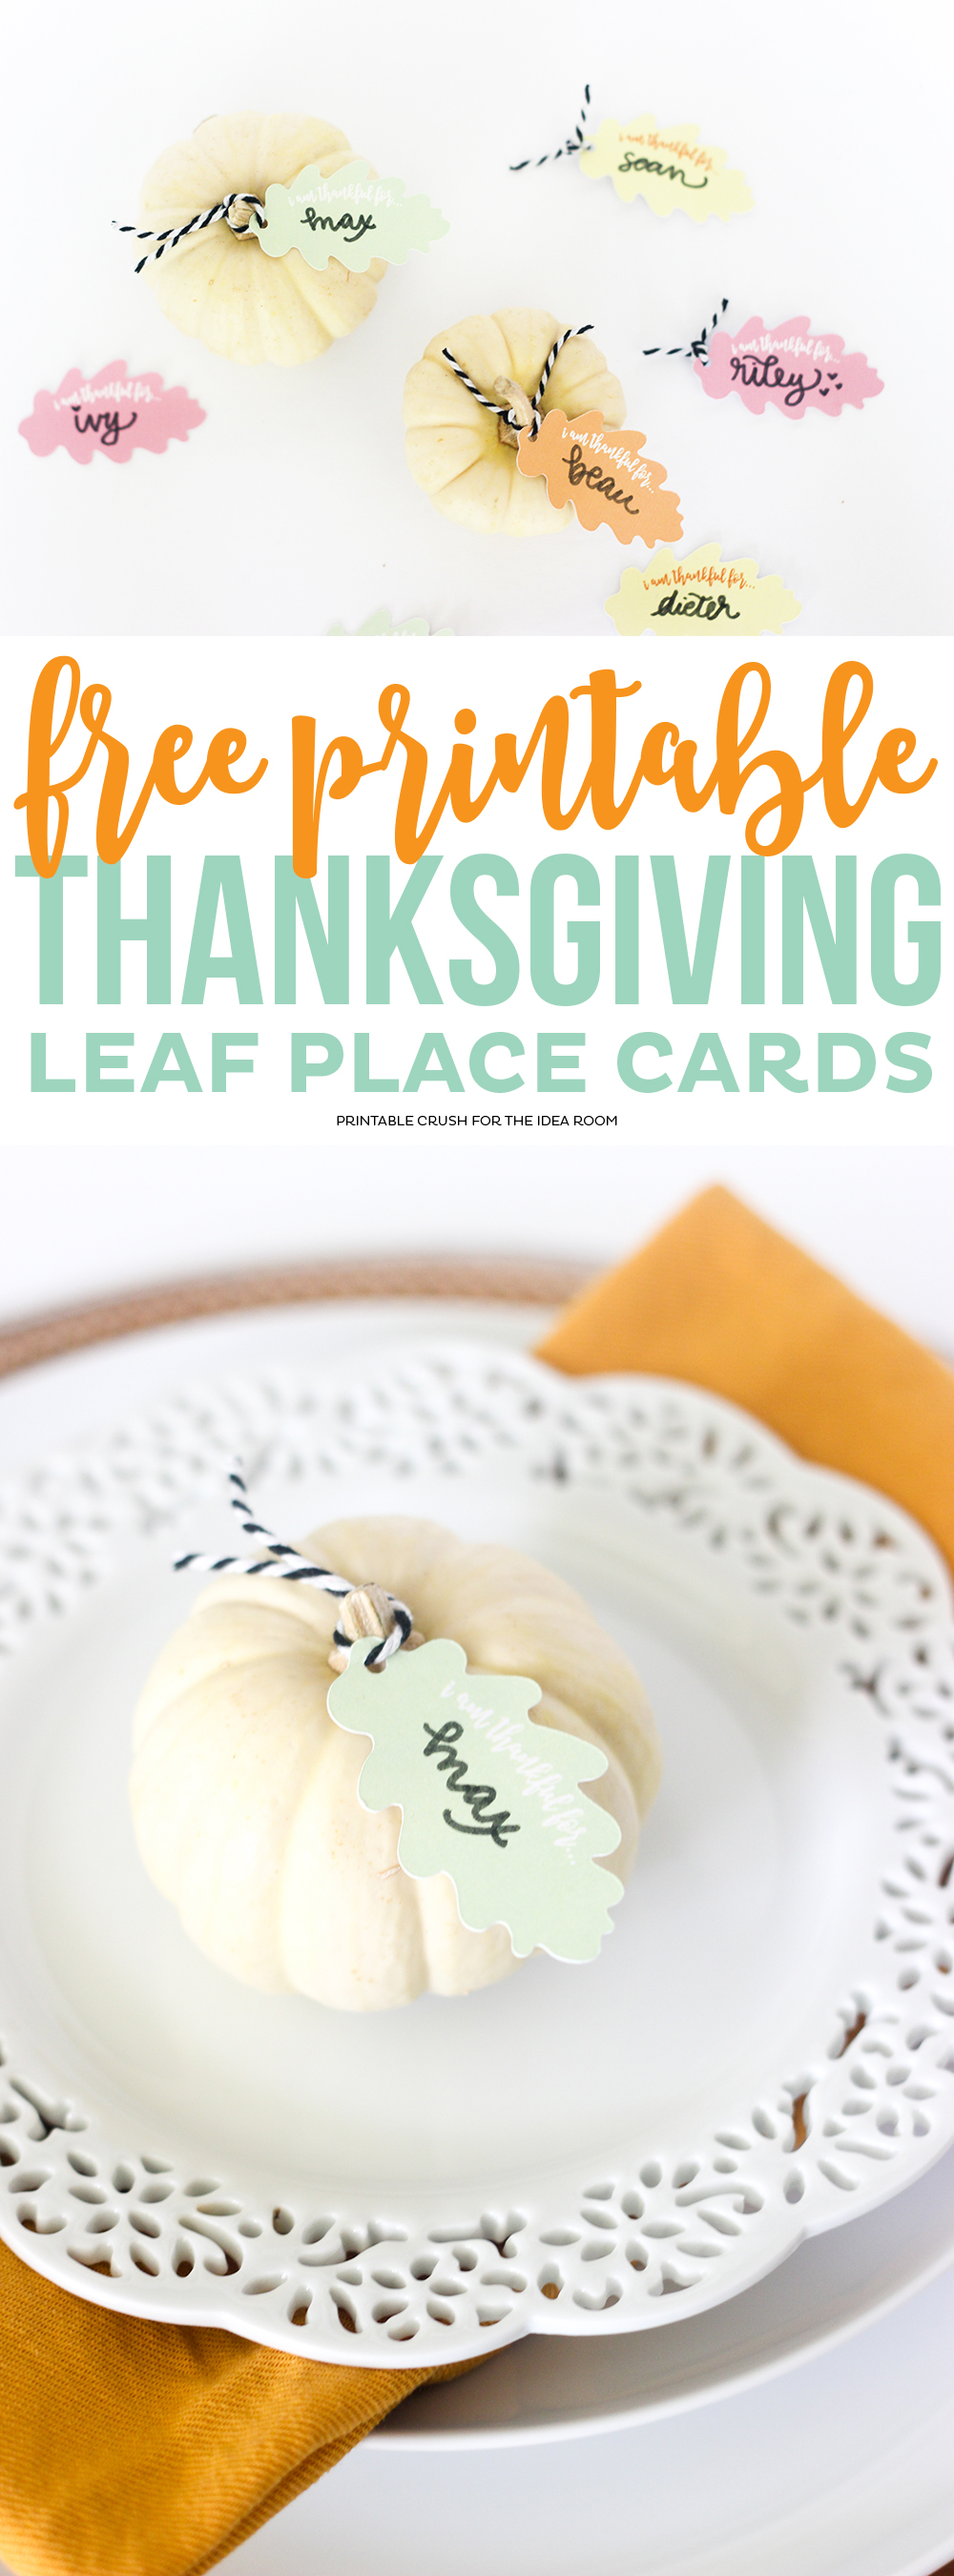 Download these pretty FREE Thanksgiving Place Card Printables to create a beautiful place setting for your guests! Includes the PDF and cut files. via @printablecrush